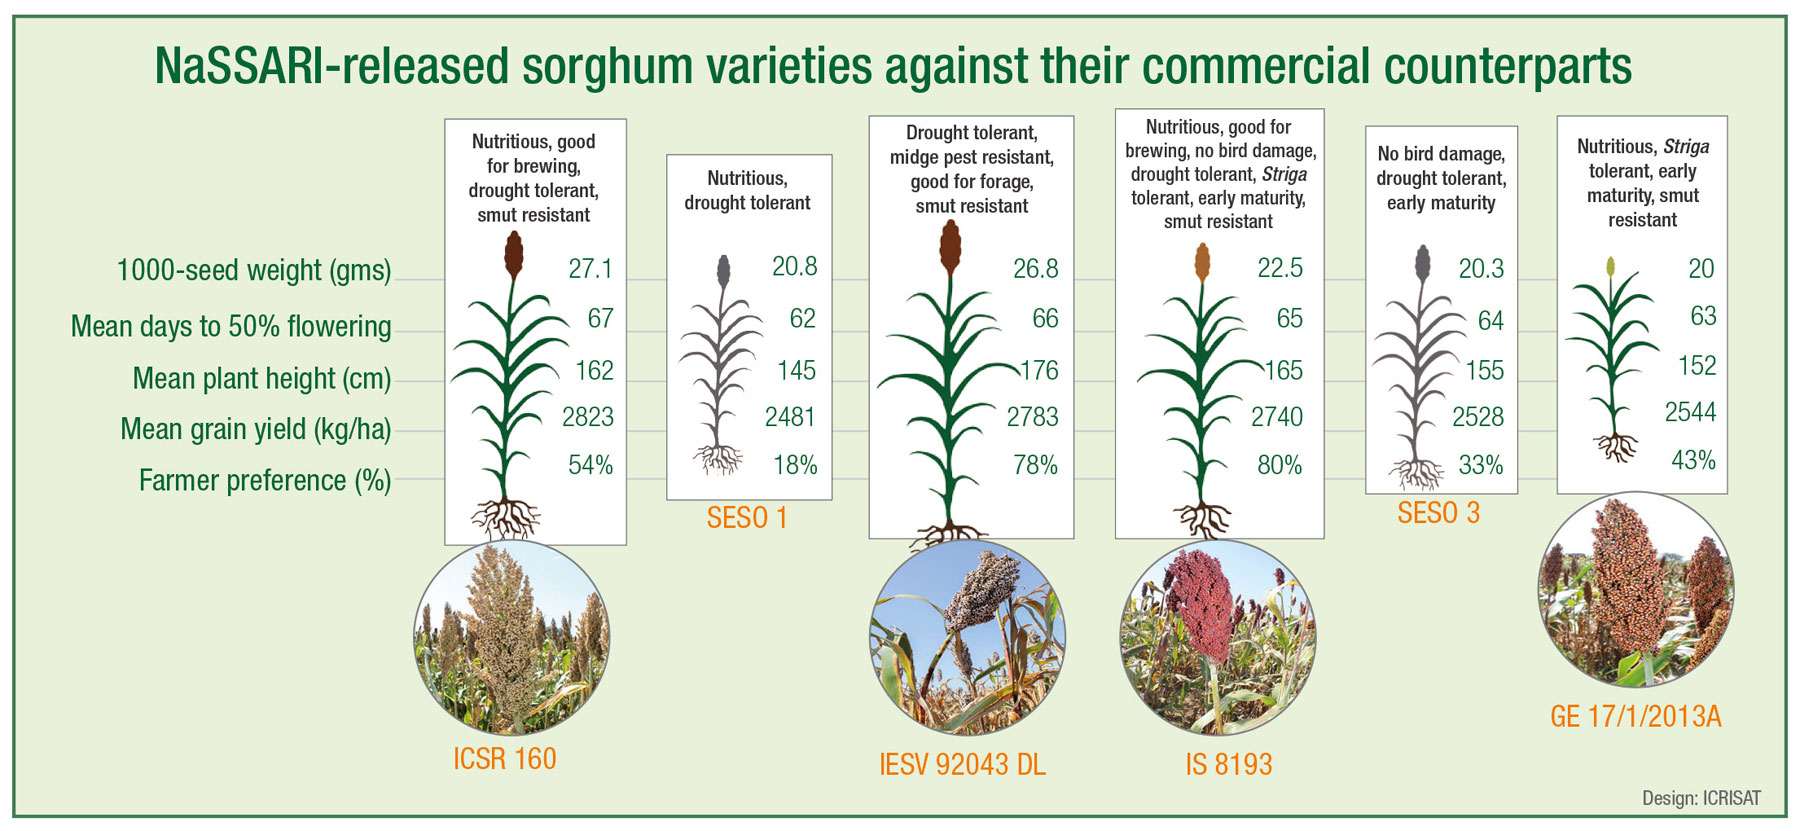 NaSSARI-released sorghum varieties against their commercial counterparts